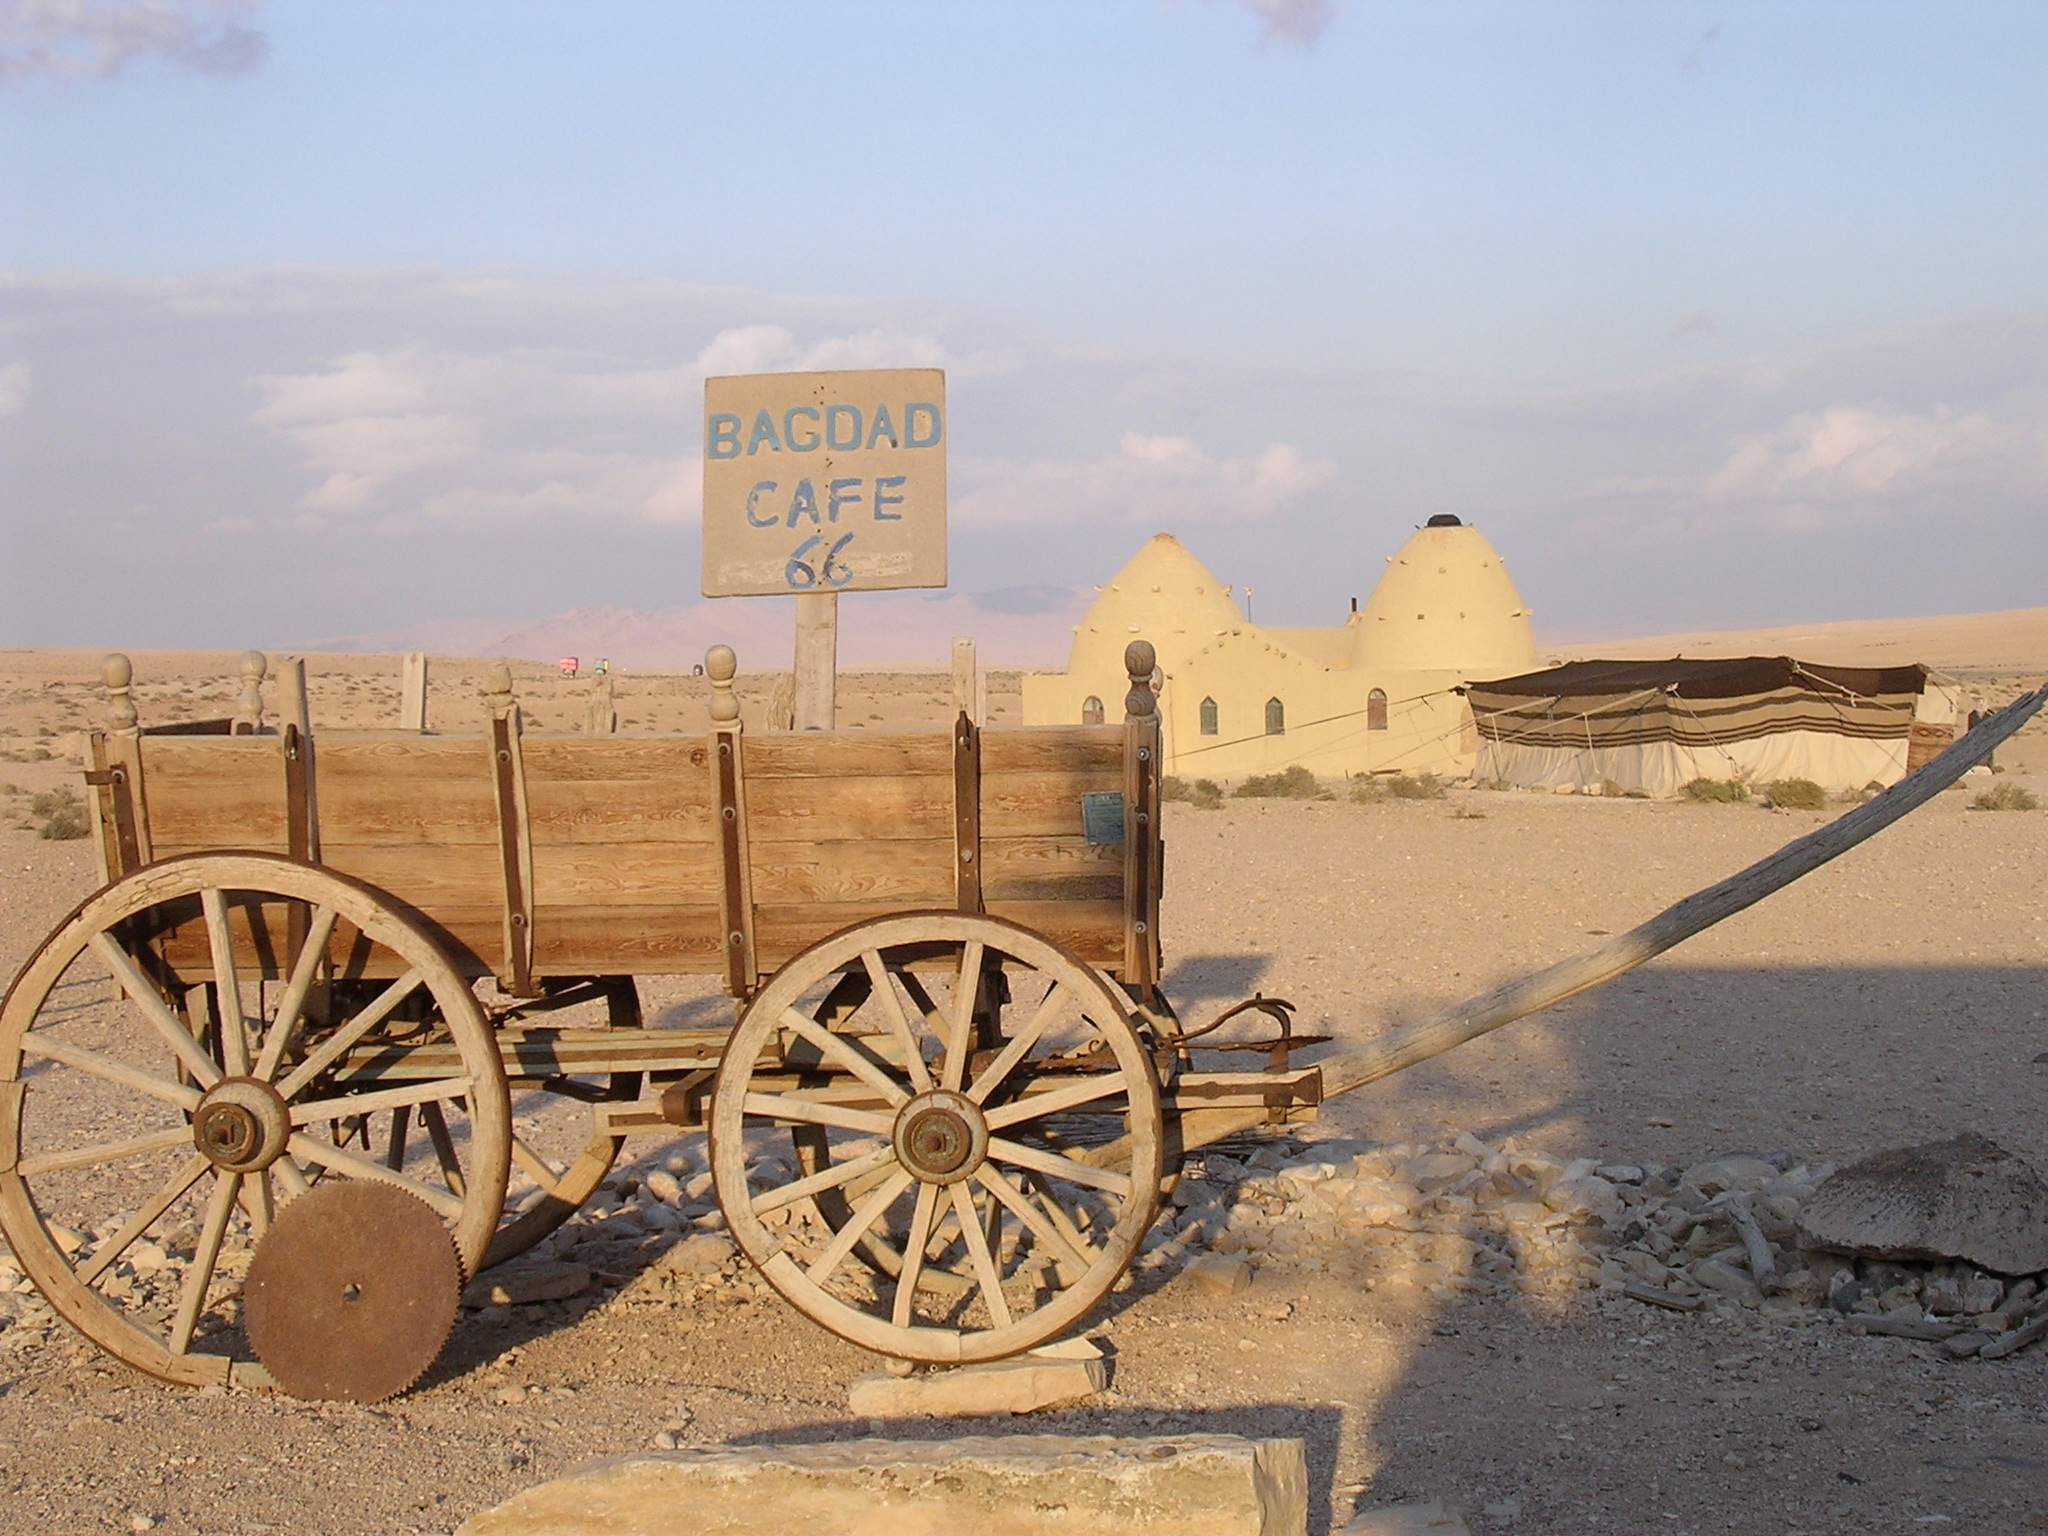 13.wagon-at-the-bagdad-cafe.jpg